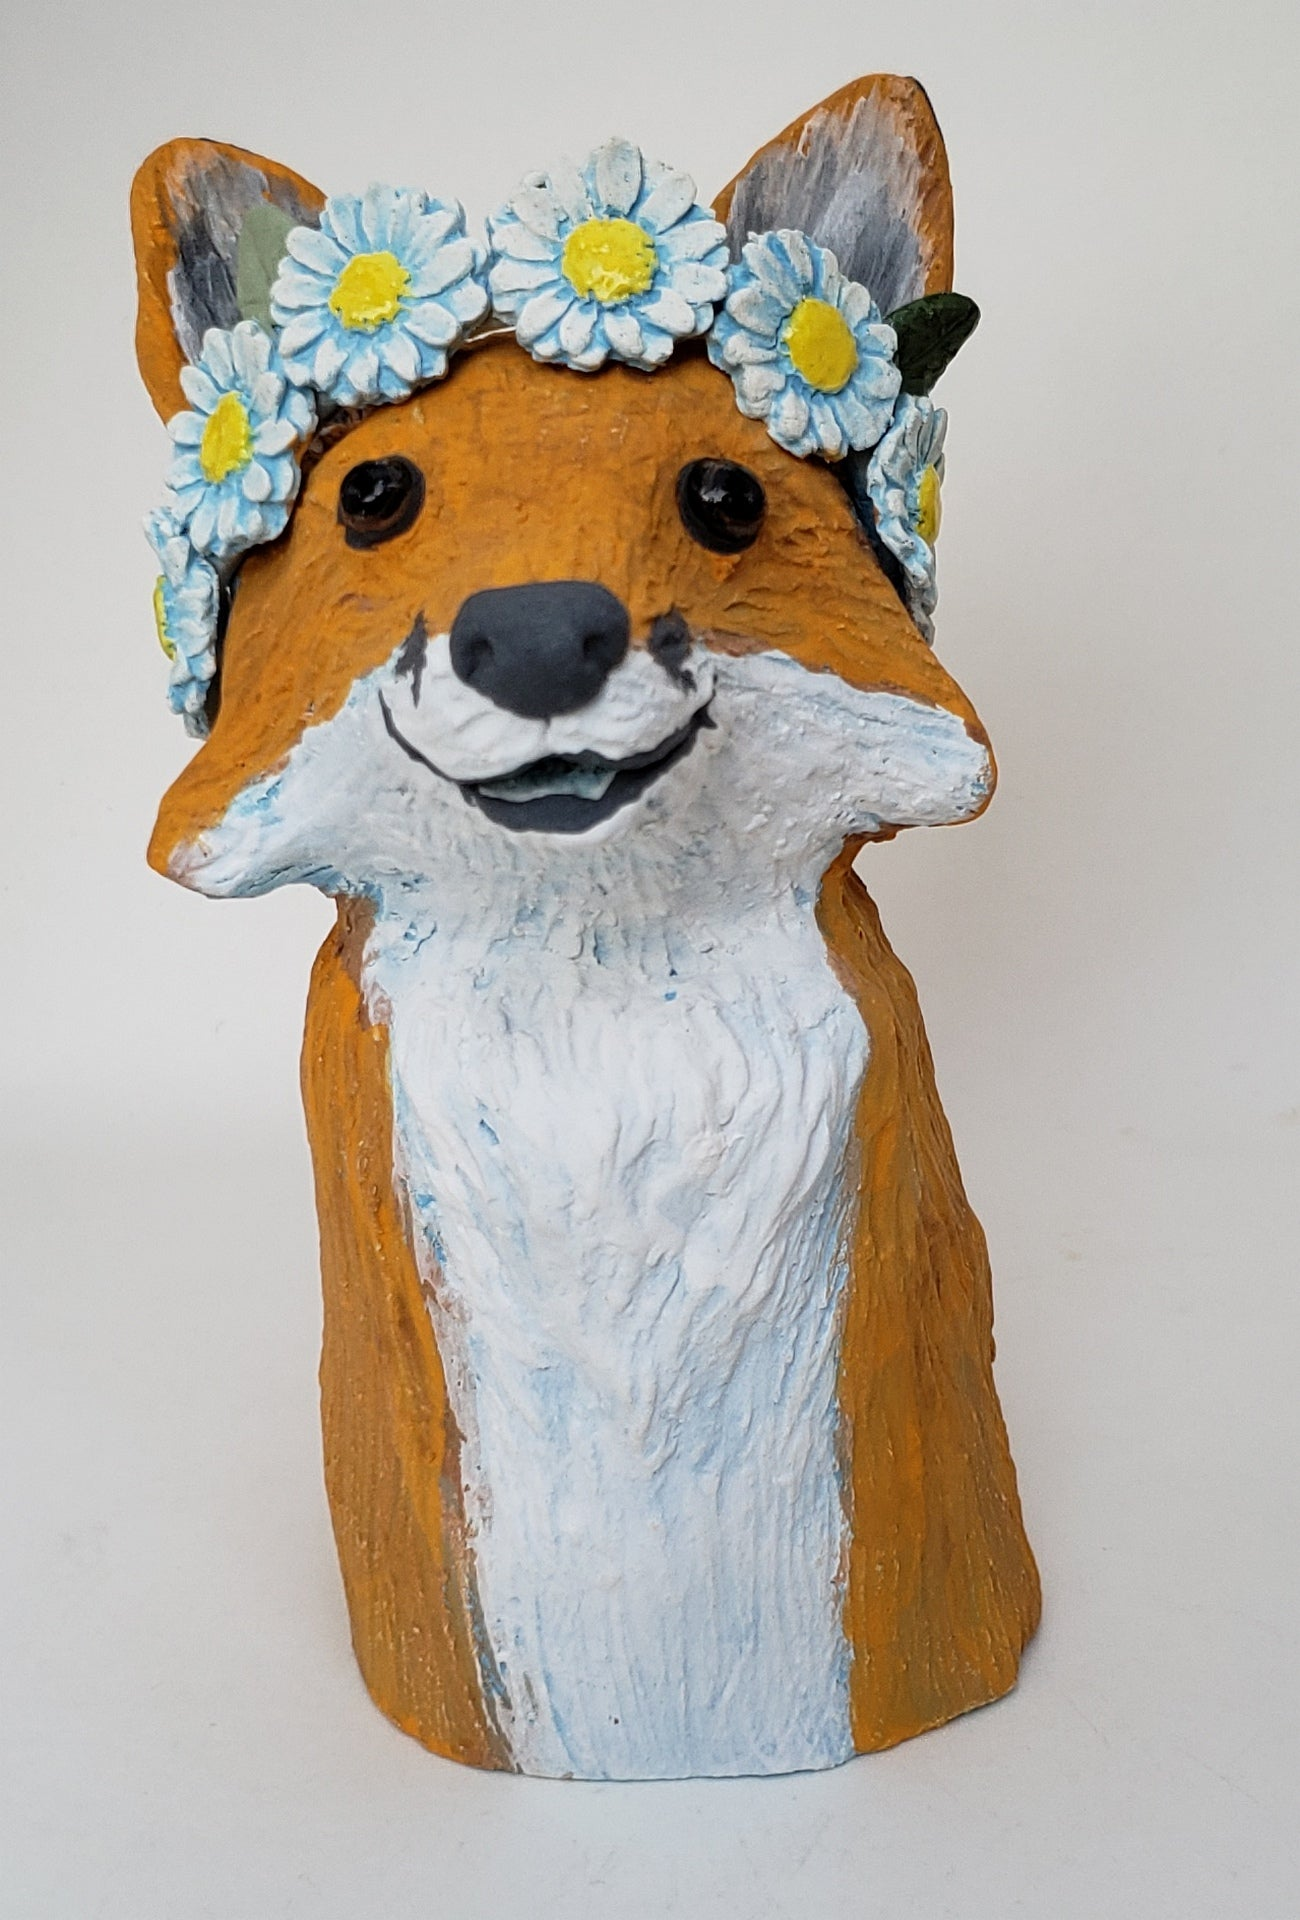 Fanny Fox Wears a Daisy Headband